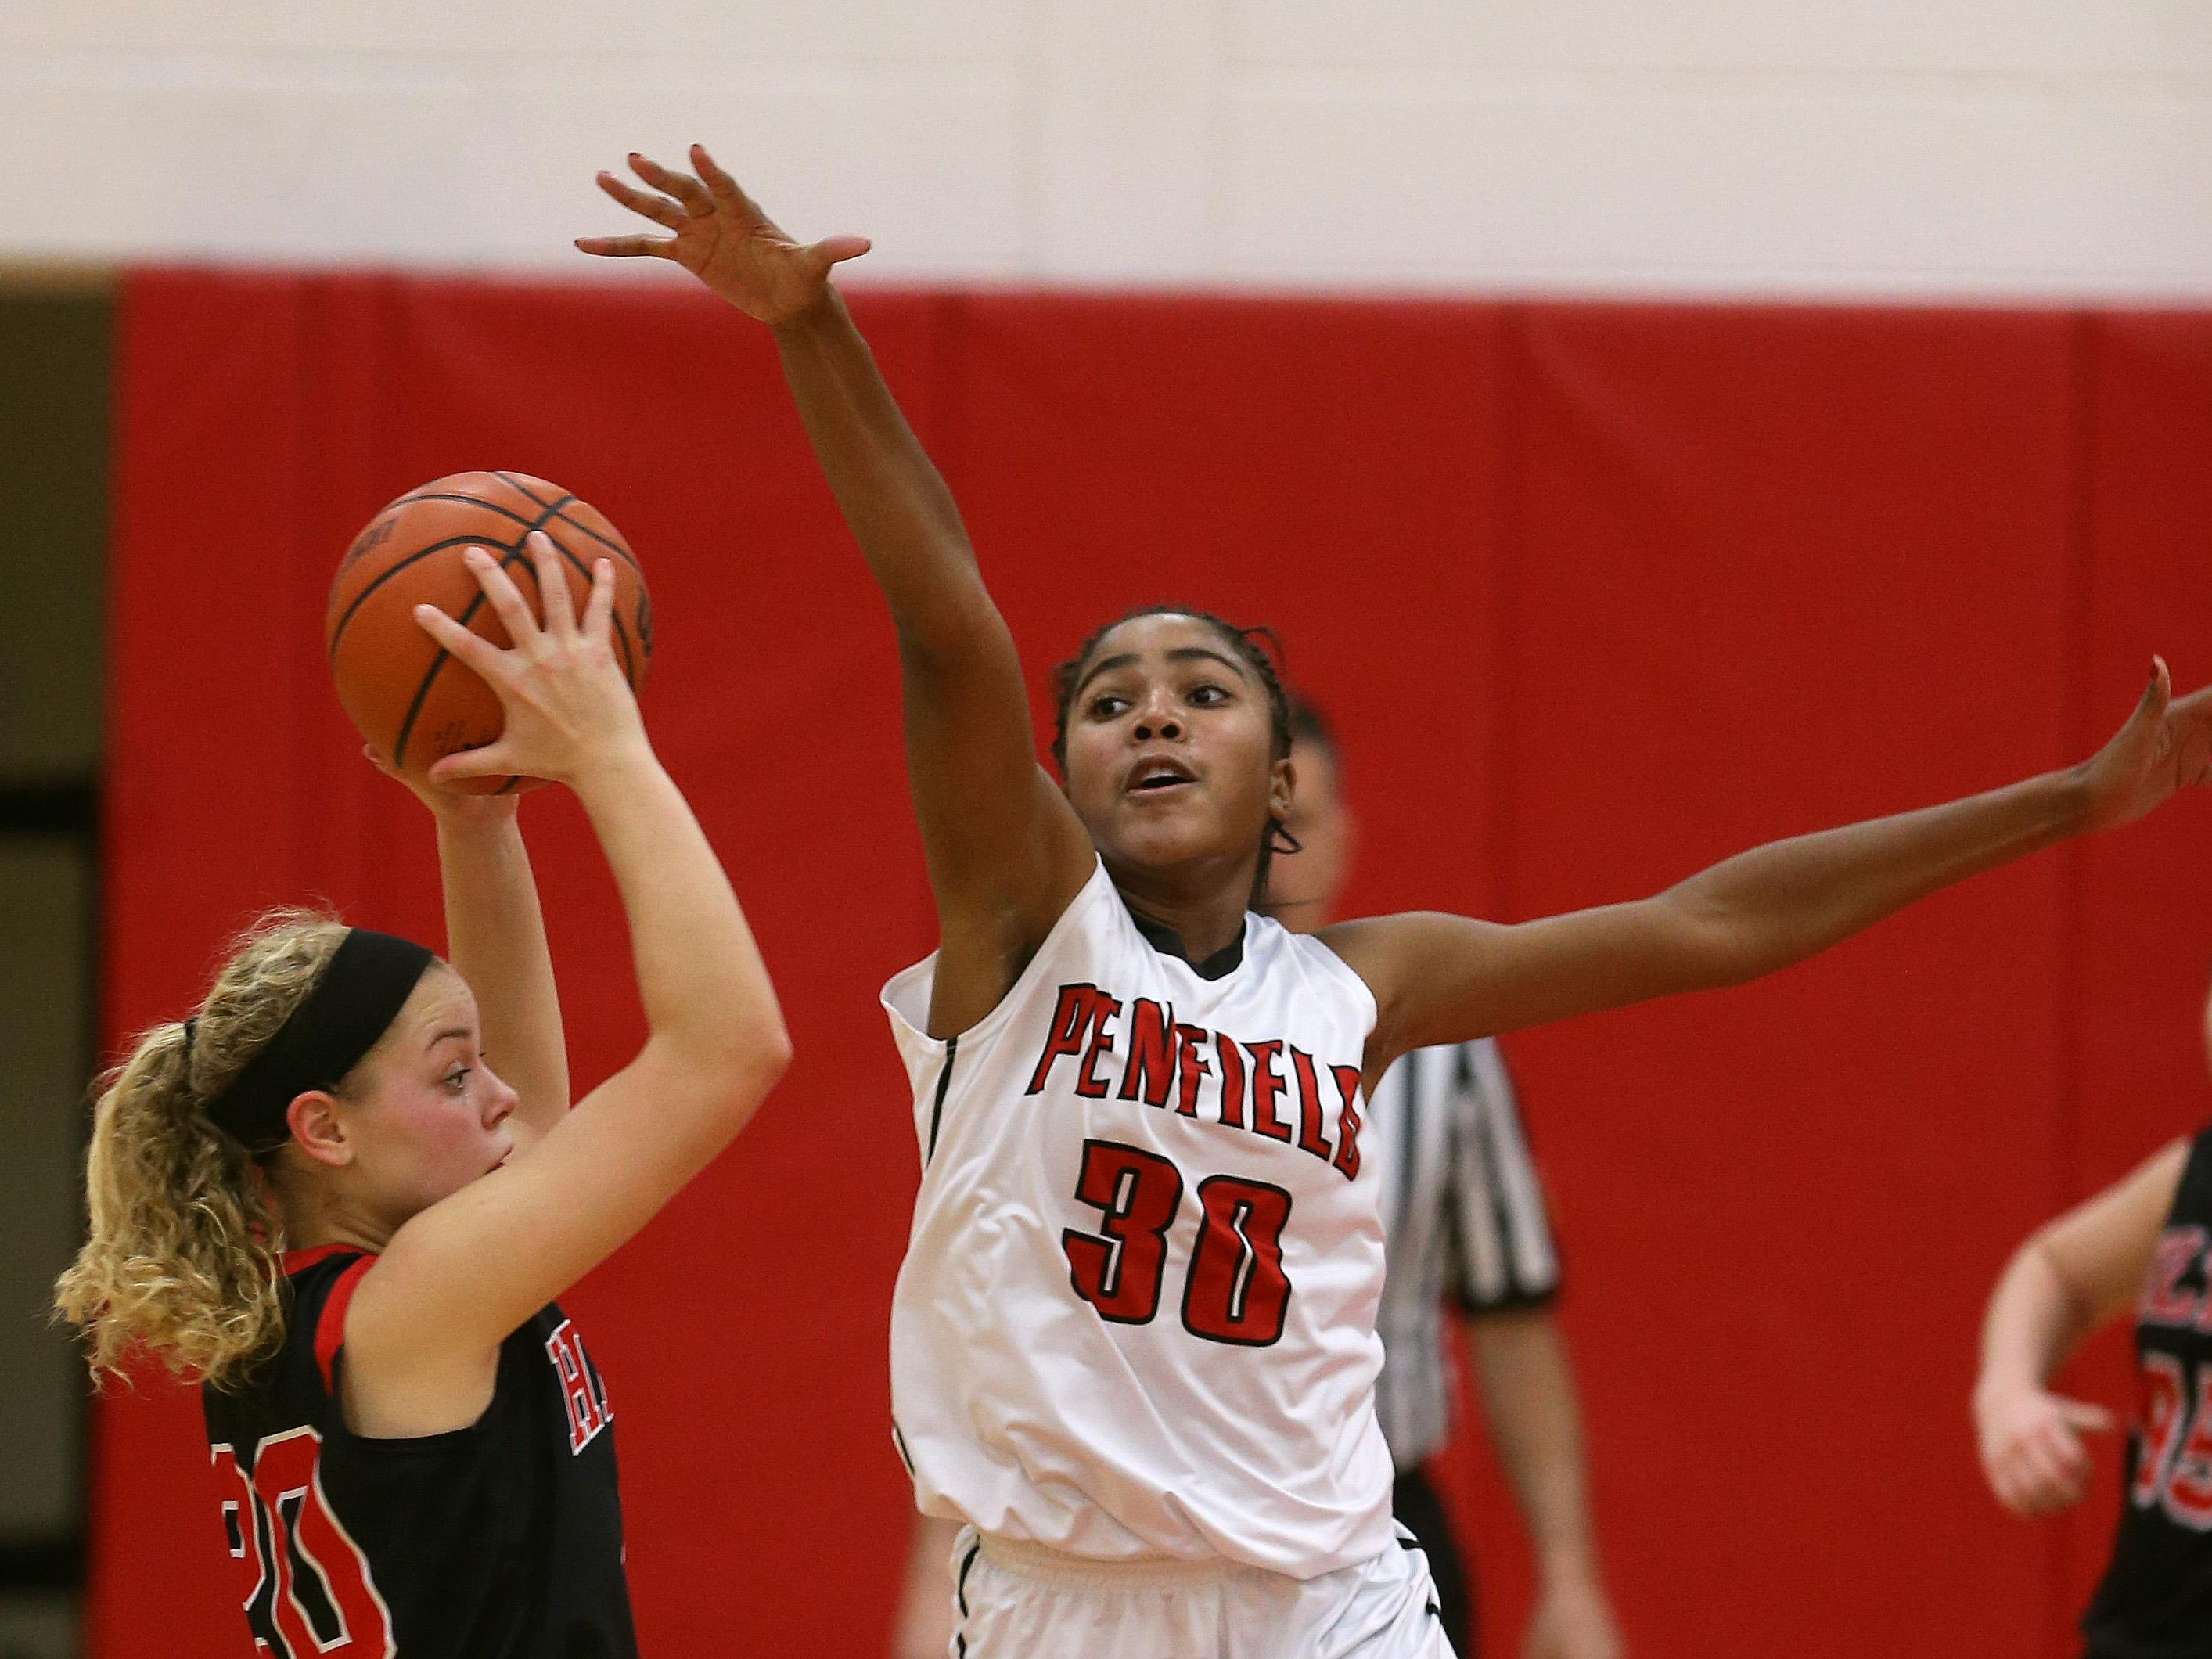 Penfield's Makaila Wilson (30) pressures Hilton's Allyson Strauss, who looks to pass.